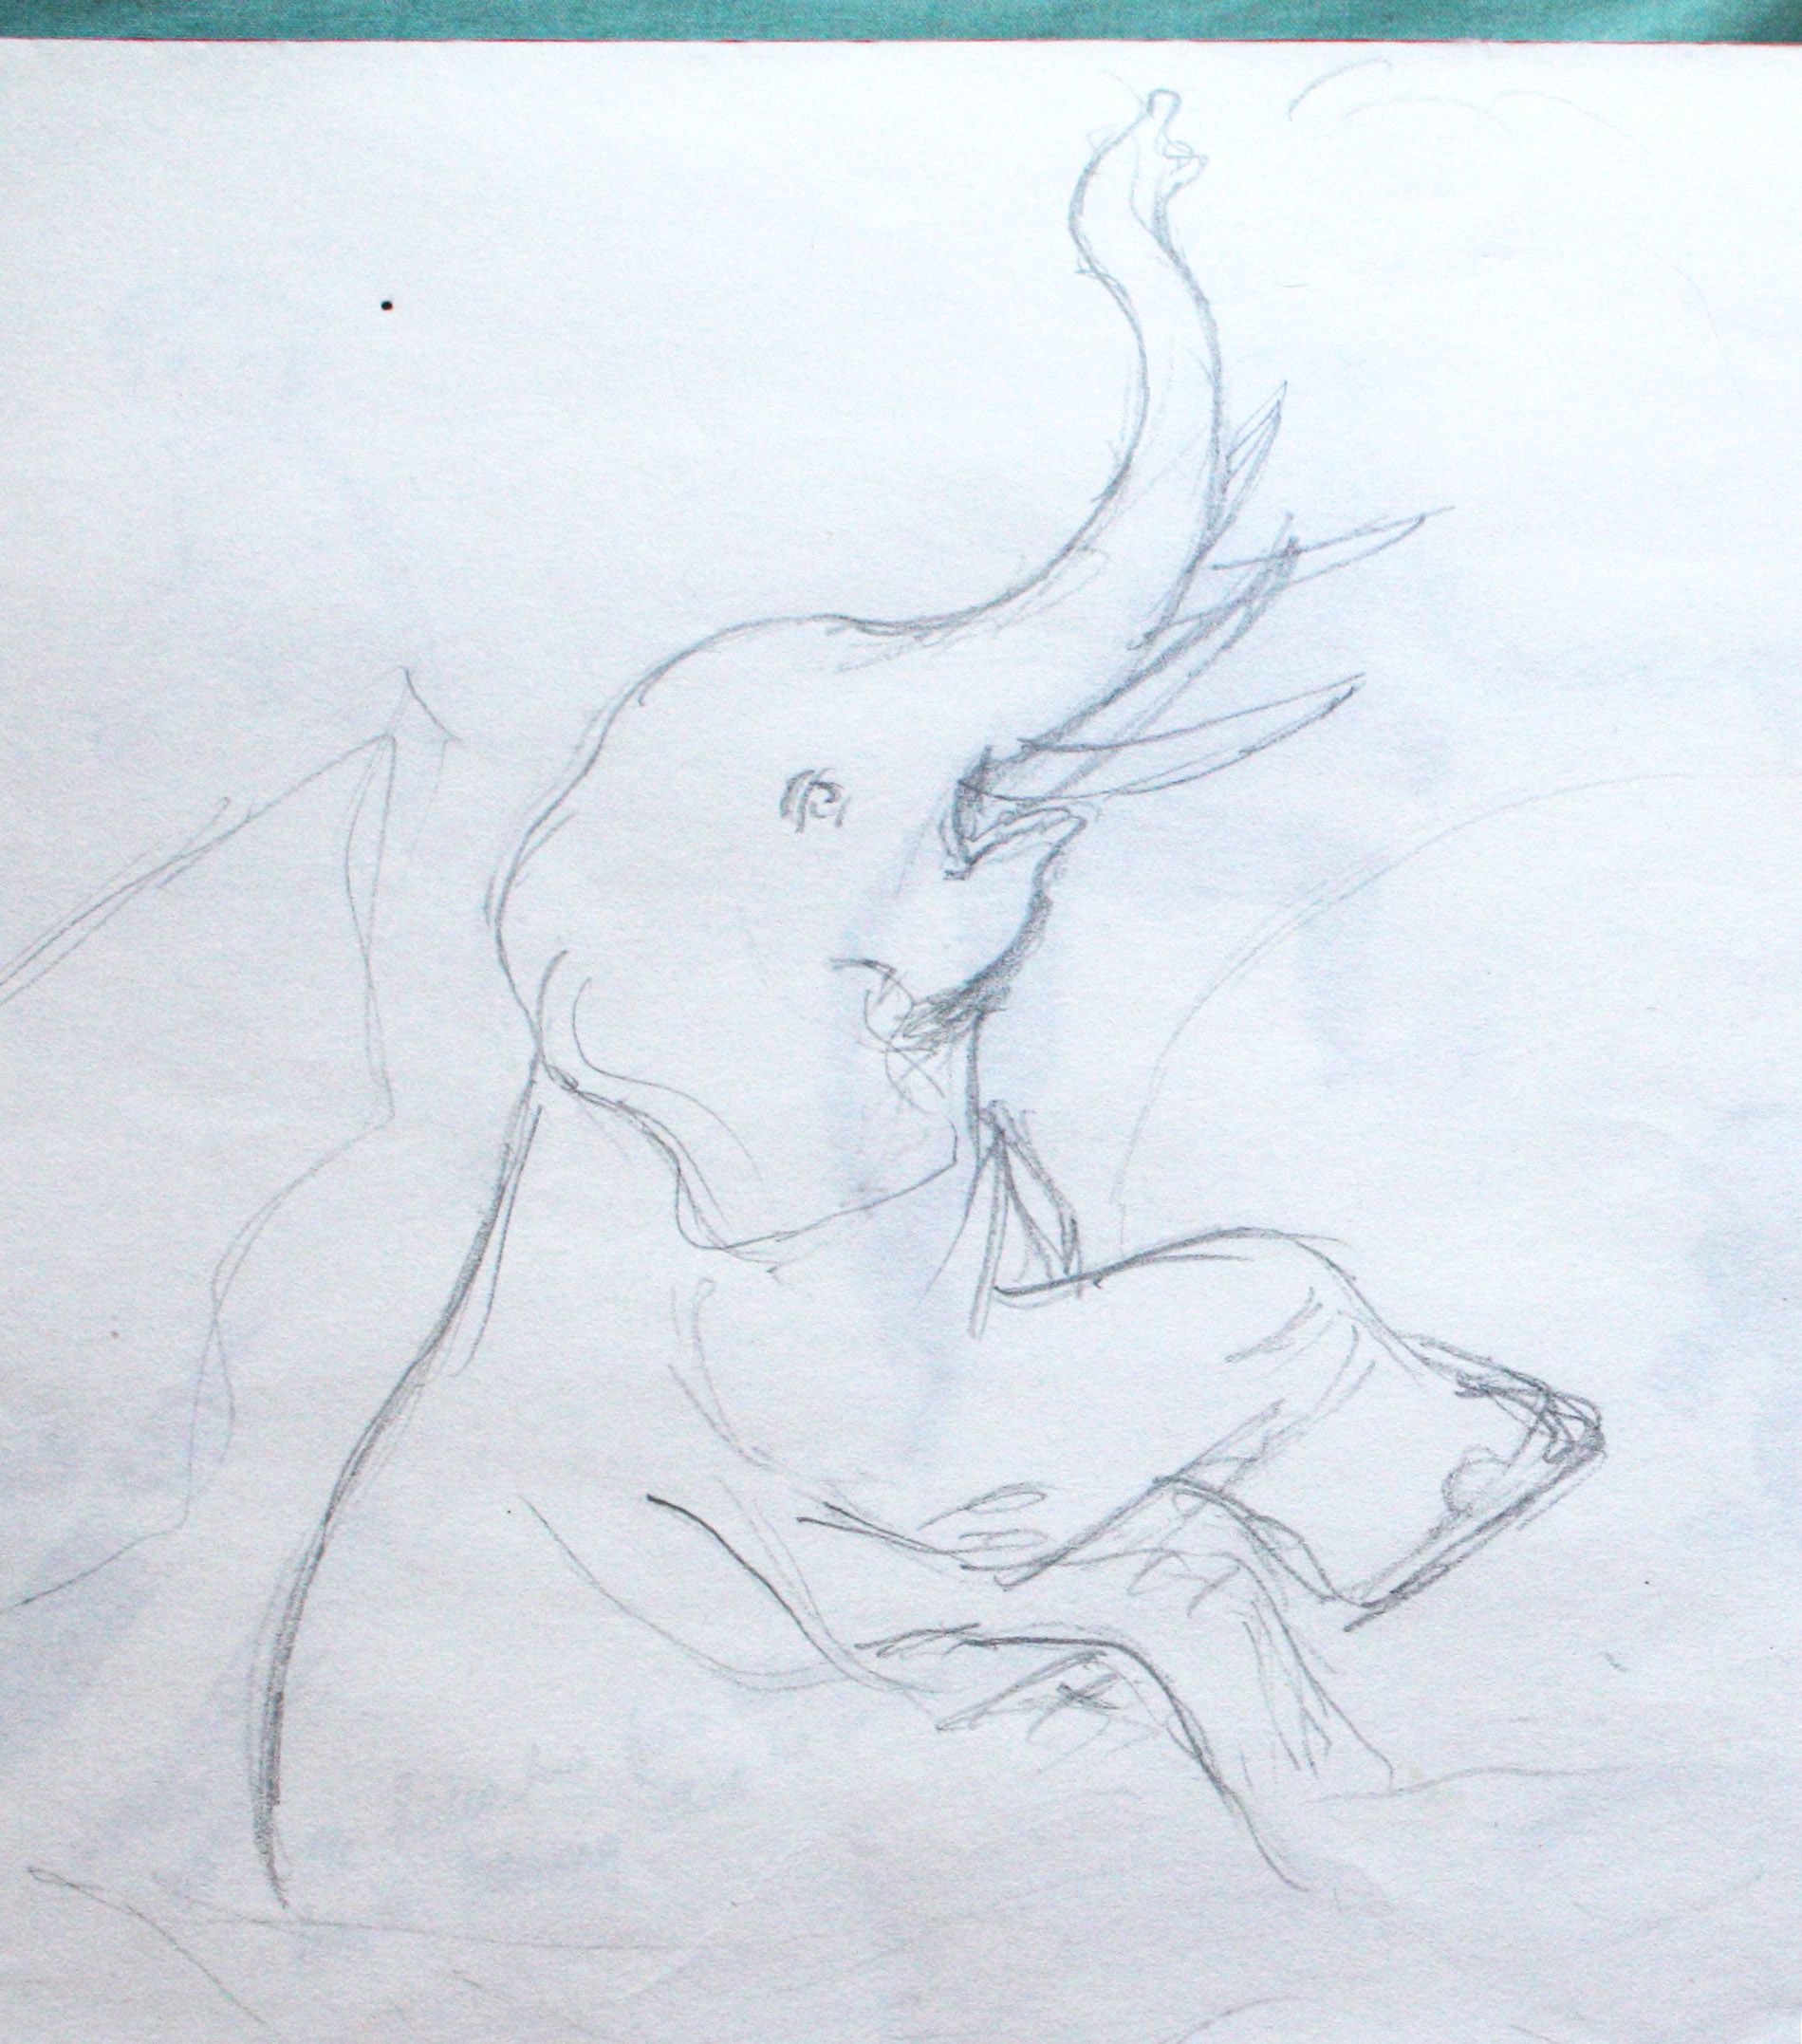 More sketches of elephants | Through the round window